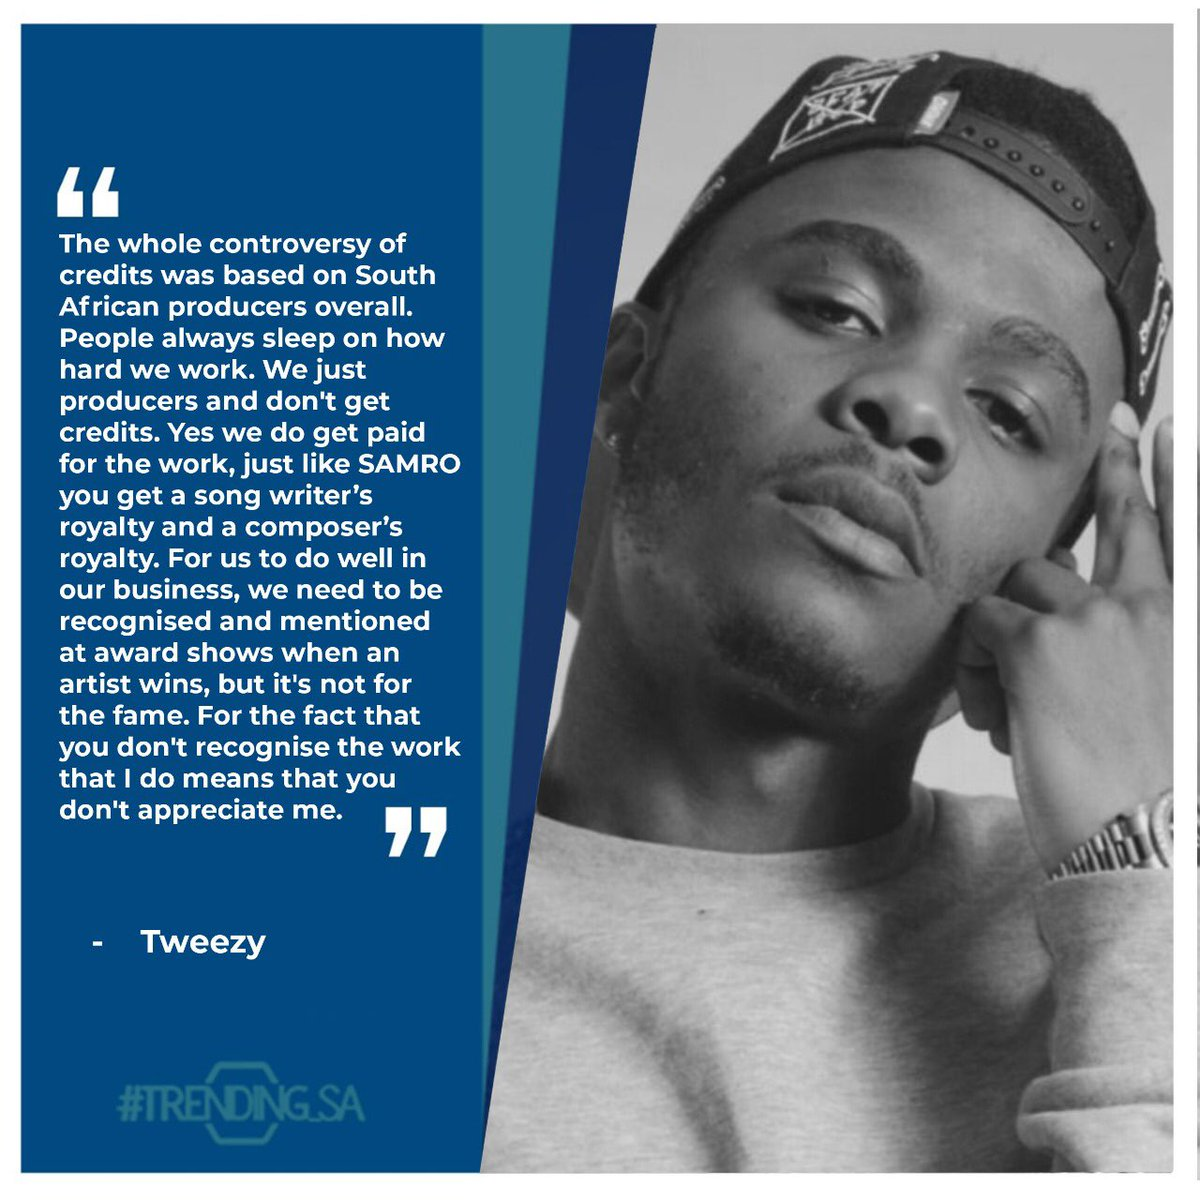 Music Producer and Rapper @TweezyZA on artists not paying producers credits. #tsaonline #tsaon3